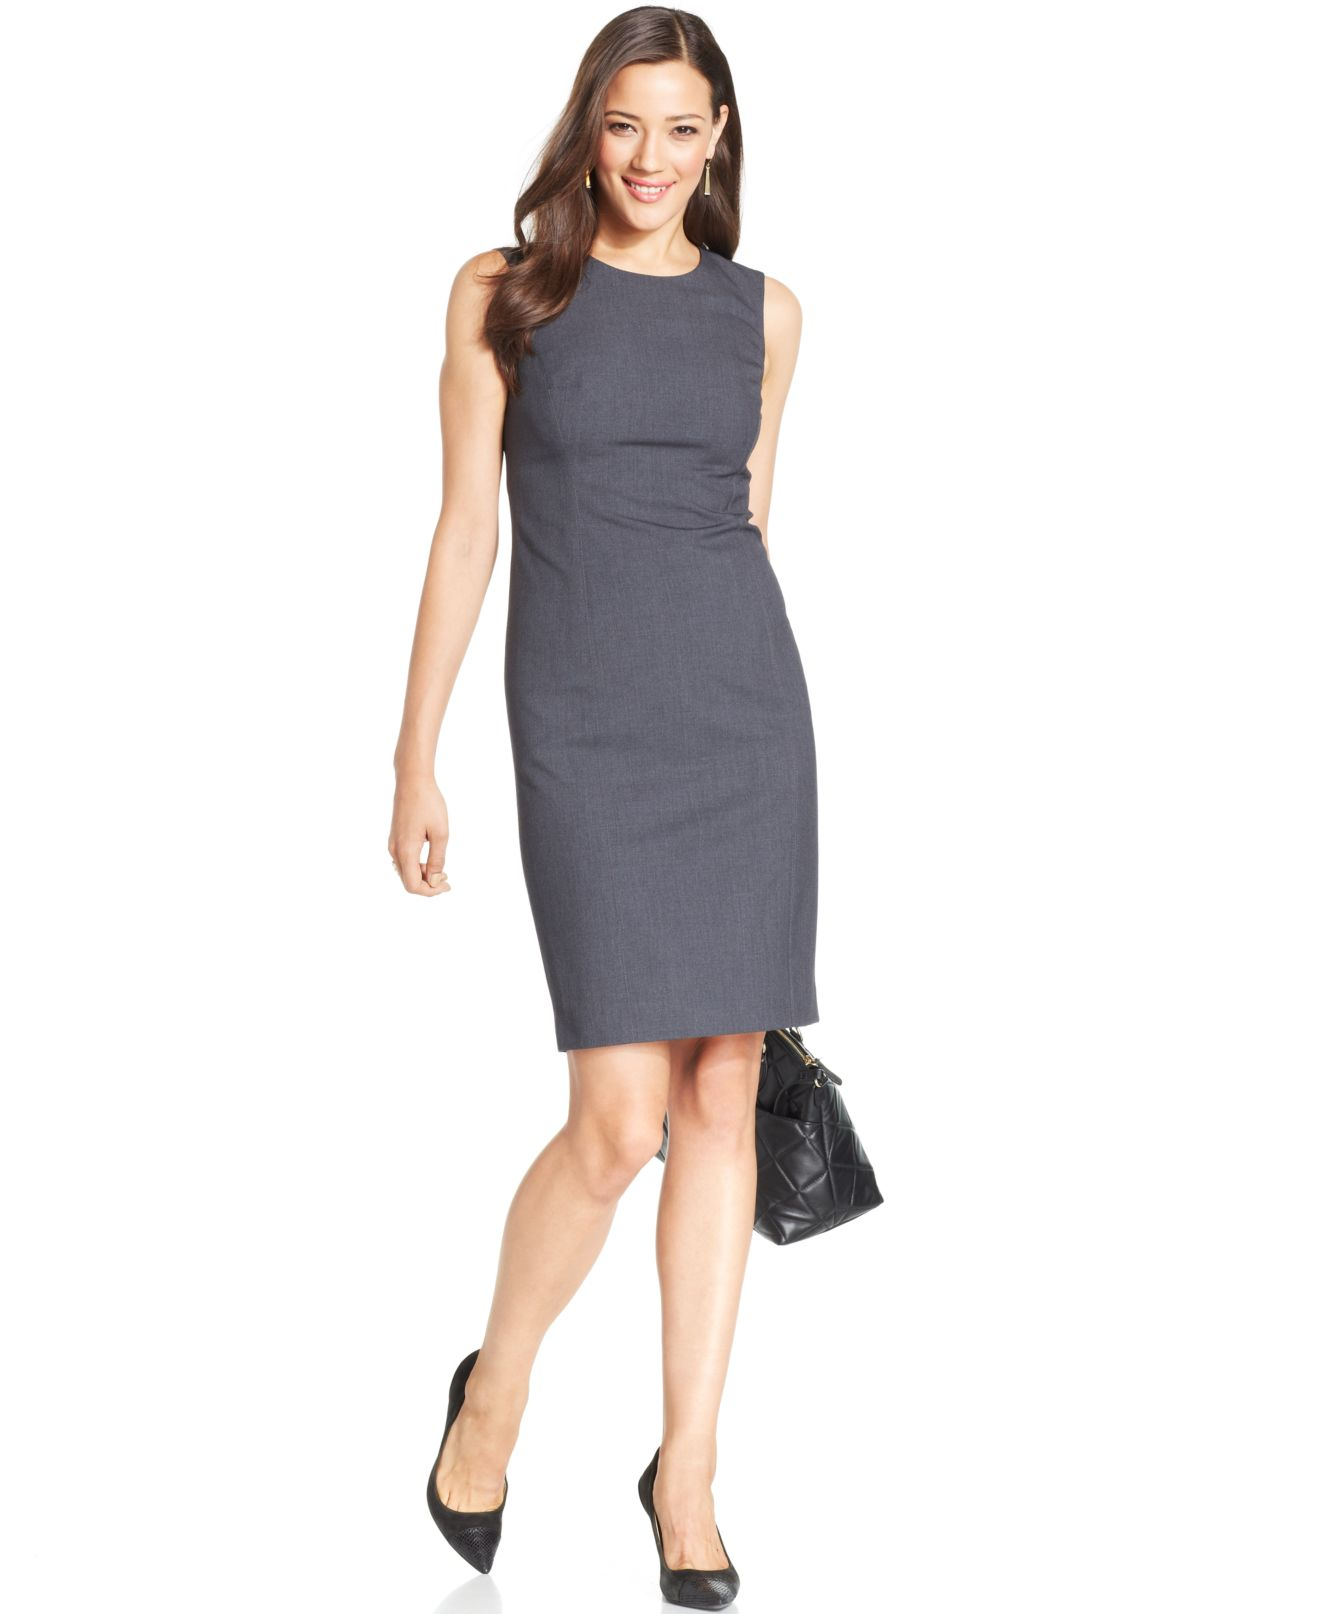 lyst jones new york sleeveless seamed sheath dress in gray. Black Bedroom Furniture Sets. Home Design Ideas